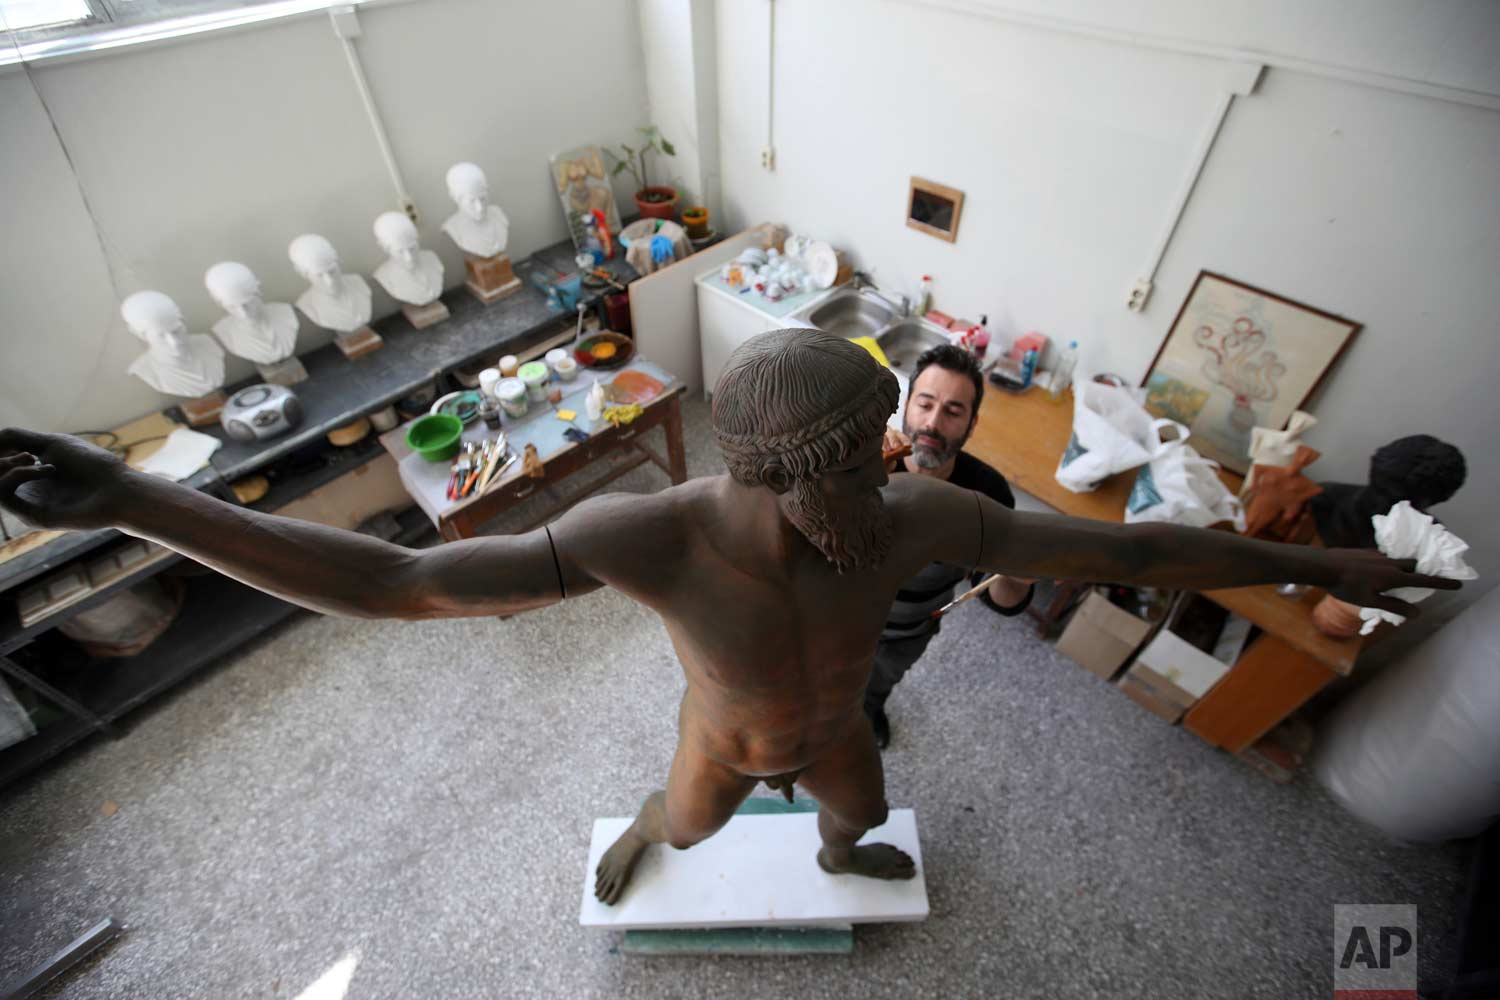 In this Monday, Jan. 22, 2018, a sculptor paints a plaster replica of the seven-foot bronze statue of Zeus, or Poseidon, made in the mid-5th century B.C. in the Culture Ministry's Lab in Athens. (AP Photo/Thanassis Stavrakis)